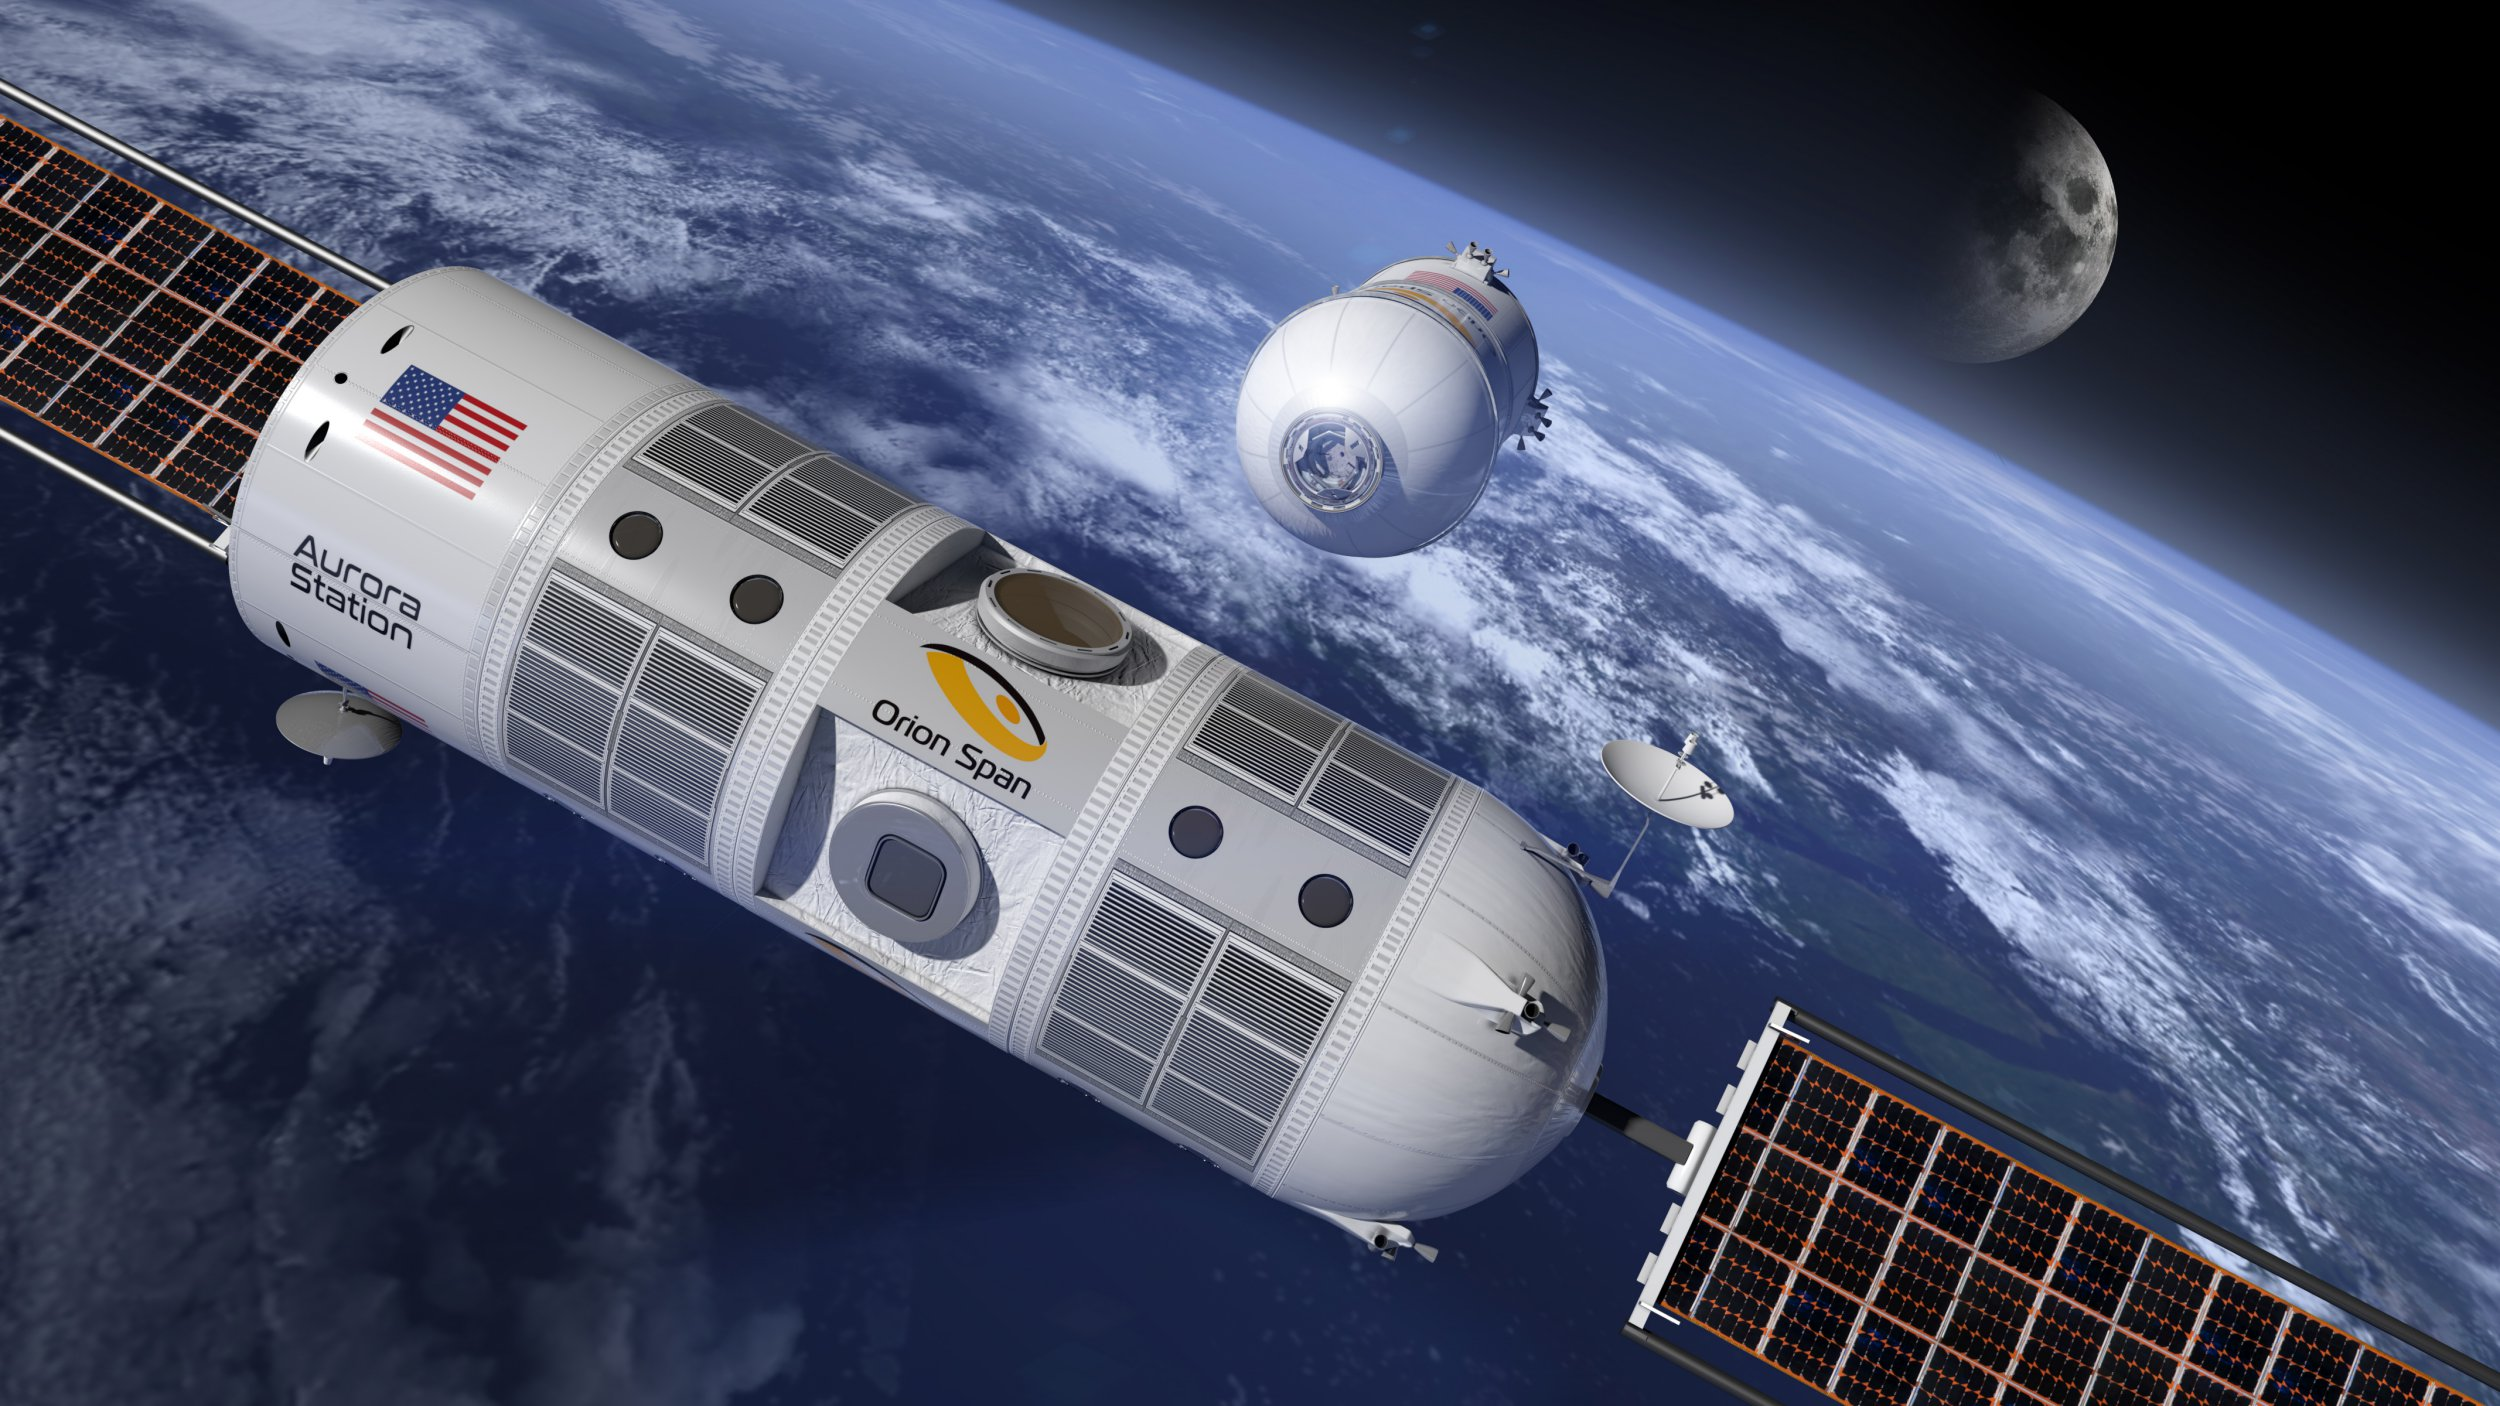 The first-ever luxury space hotel has been announced. Introduced during the Space 2.0 Summit in San Jose, California, the Aurora Station is named after the magical light phenomenon that illuminates the Earth???s polar skies. It is being developed by Texas-based Orion Span and the company???s team of space industry veterans, who have over 140 years of human space experience. The first fully modular space station to ever debut, Aurora Station will operate as the first luxury hotel in space. The exclusive hotel will host six people at a time ??? including two crew members. Space travelers will enjoy a completely authentic, once-in-a-lifetime astronaut experience with extraordinary adventure during their 12-day journey, starting at $9.5M per person. Deposits are now being accepted for a future stay on Aurora Station, which is slated to launch in late 2021 and host its first guests in 2022. The fully refundable deposit is $80,000 per person and can be reserved online here. ???We developed Aurora Station to provide a turnkey destination in space. Upon launch, Aurora Station goes into service immediately, bringing travelers into space quicker and at a lower price point than ever seen before, while still providing an unforgettable experience,??? said Frank Bunger, chief executive officer and founder of Orion Span. ???Orion Span has additionally taken what was historically a 24-month training regimen to prepare travelers to visit a space station and streamlined it to three months, at a fraction of the cost. Our goal is to make space accessible to all, by continuing to drive greater value at lower cost.??? During their stay on Aurora Station, travelers will enjoy the exhilaration of zero gravity and fly freely throughout Aurora Station, gaze at the northern and southern aurora through the many windows, soar over their hometowns, take part in research experiments such as growing food while in orbit (which they can take home with them as the ultimate souvenir), revel i